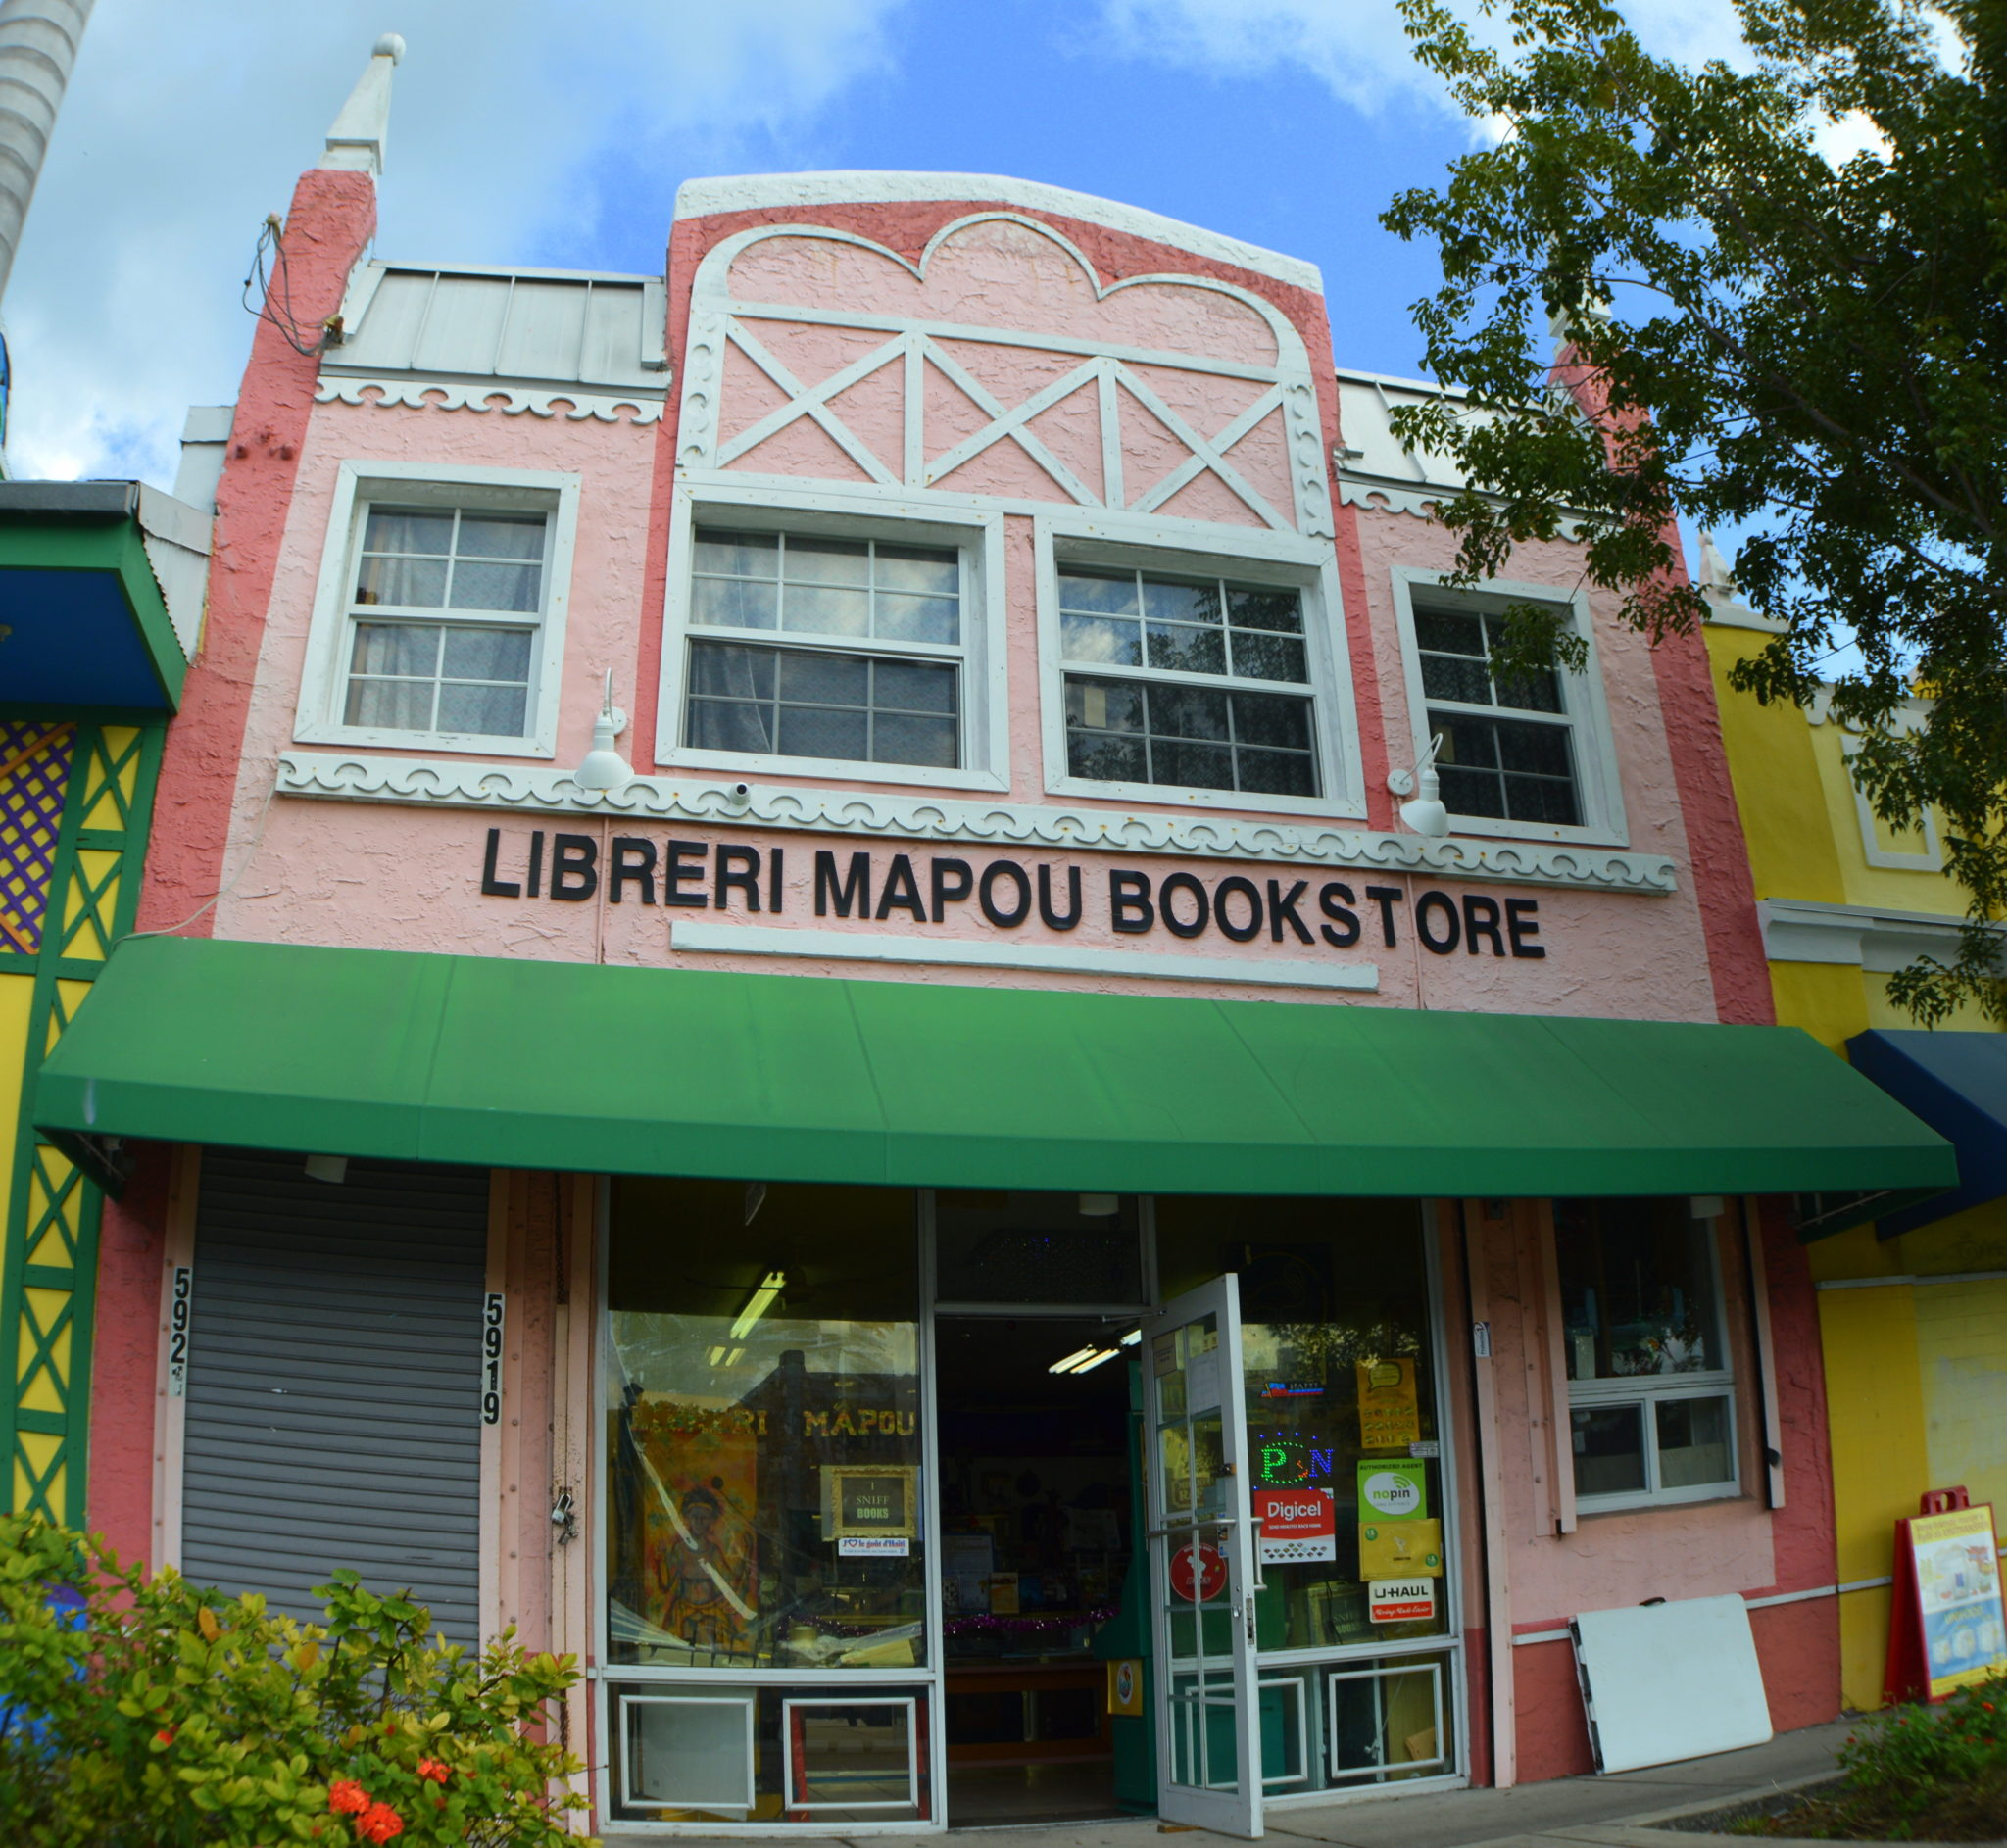 Liberi Mapou is located nearby at 5919 NE 2nd Ave. It offers a bookstore and also serves as a cultural space.